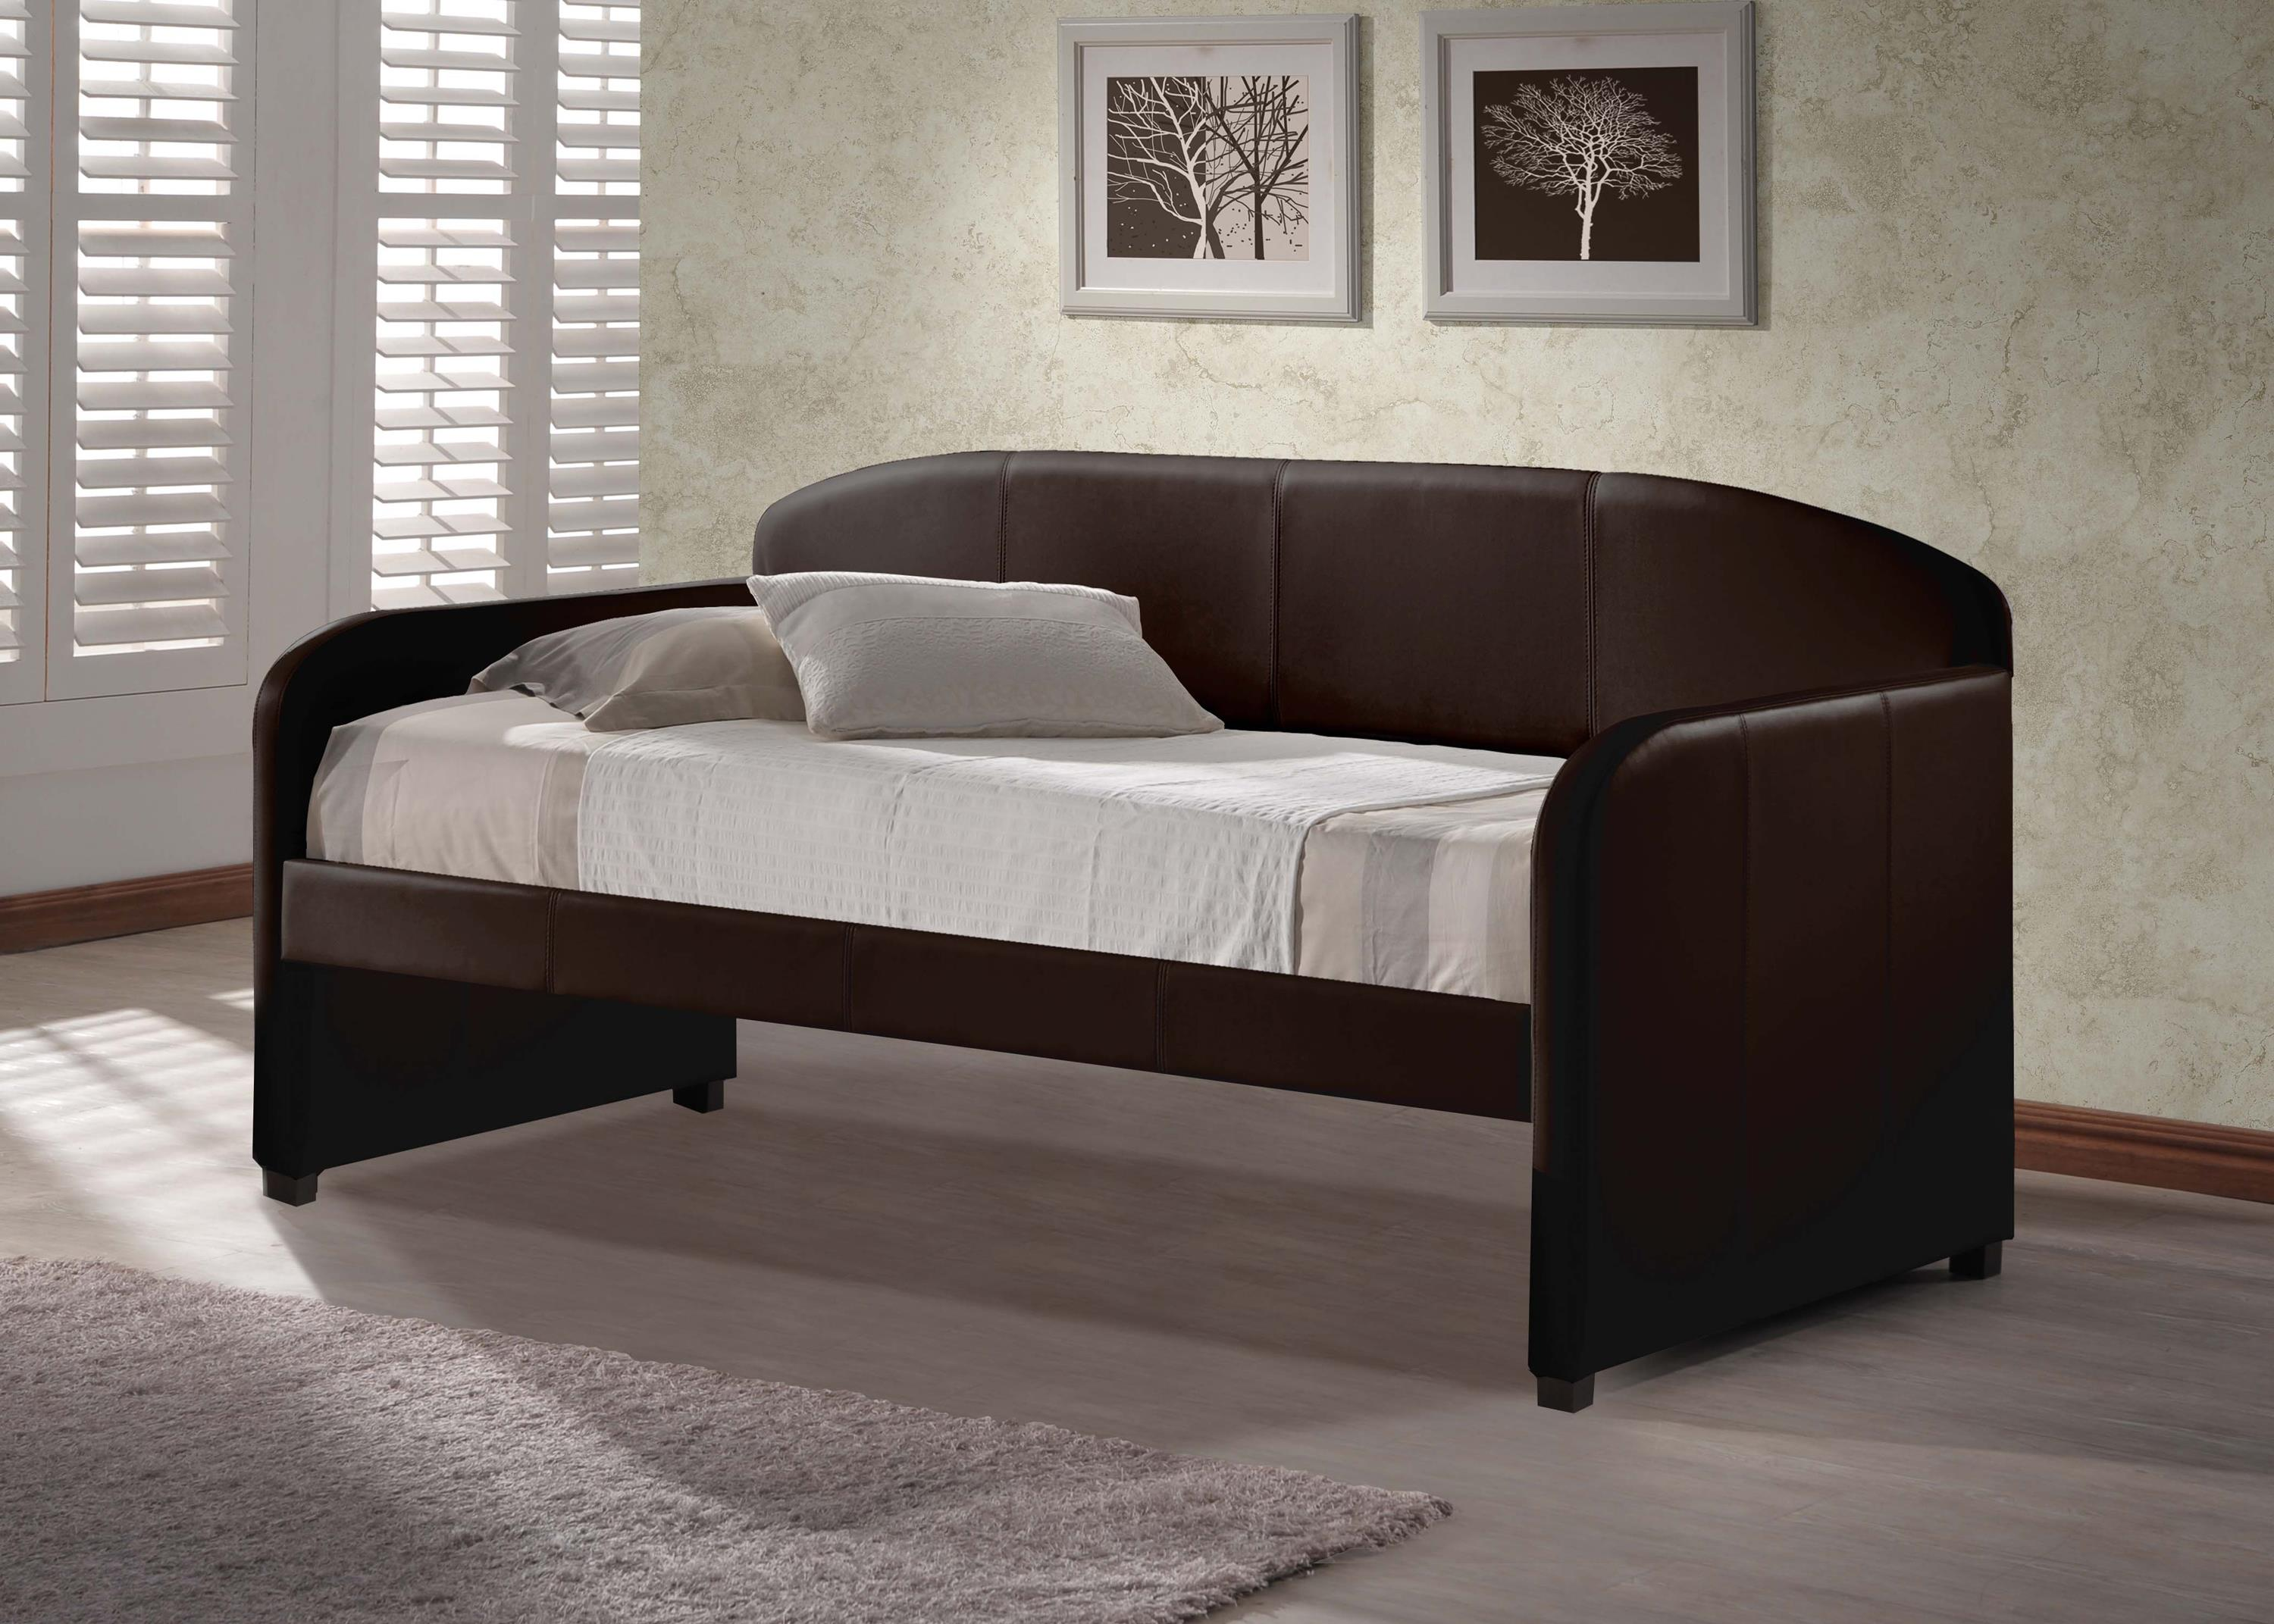 Daybeds Twin Springfield Daybed at Ruby Gordon Home